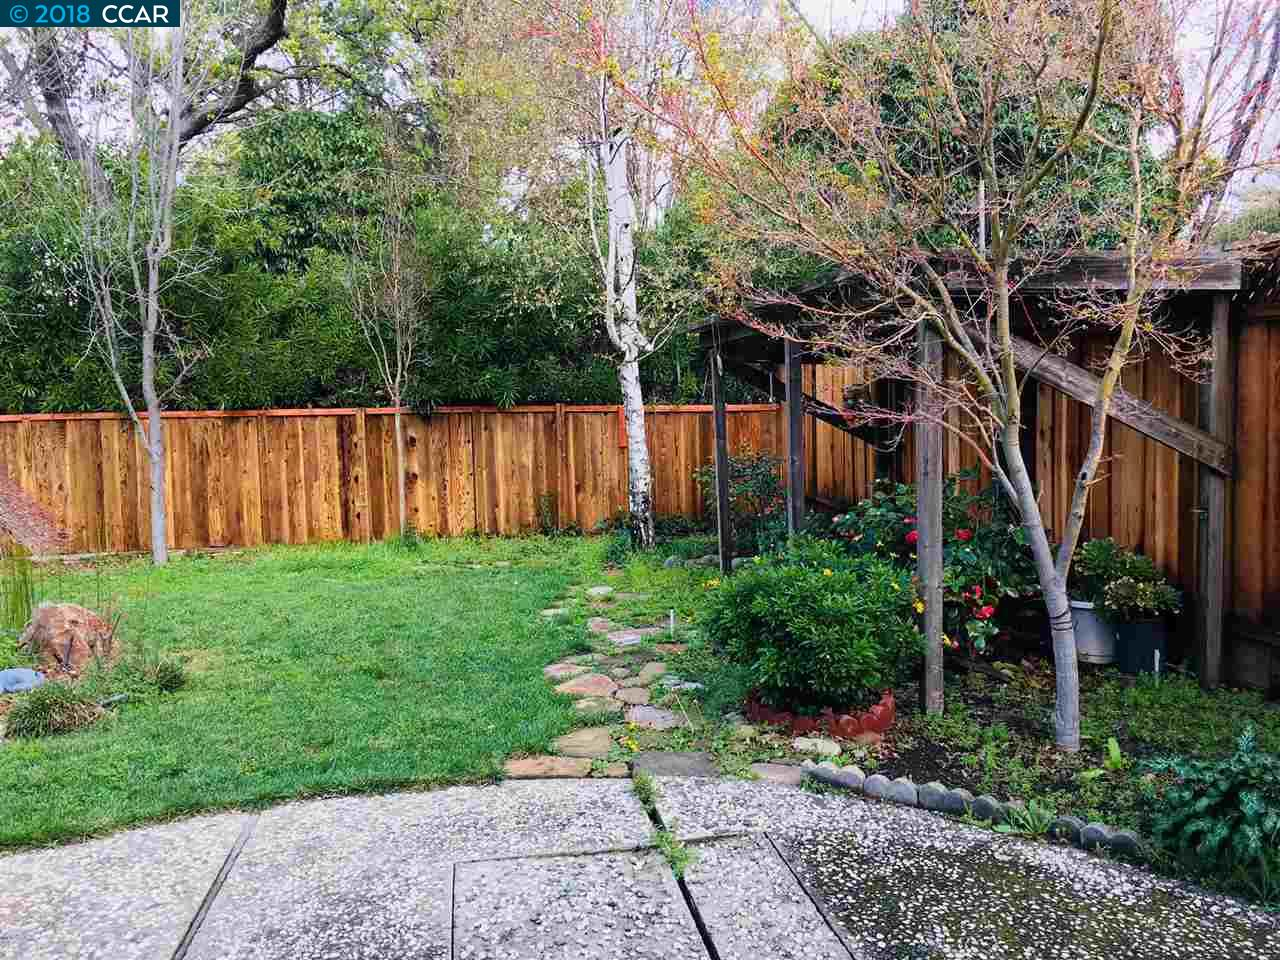 848 MCELROY CT, CONCORD, CA 94518  Photo